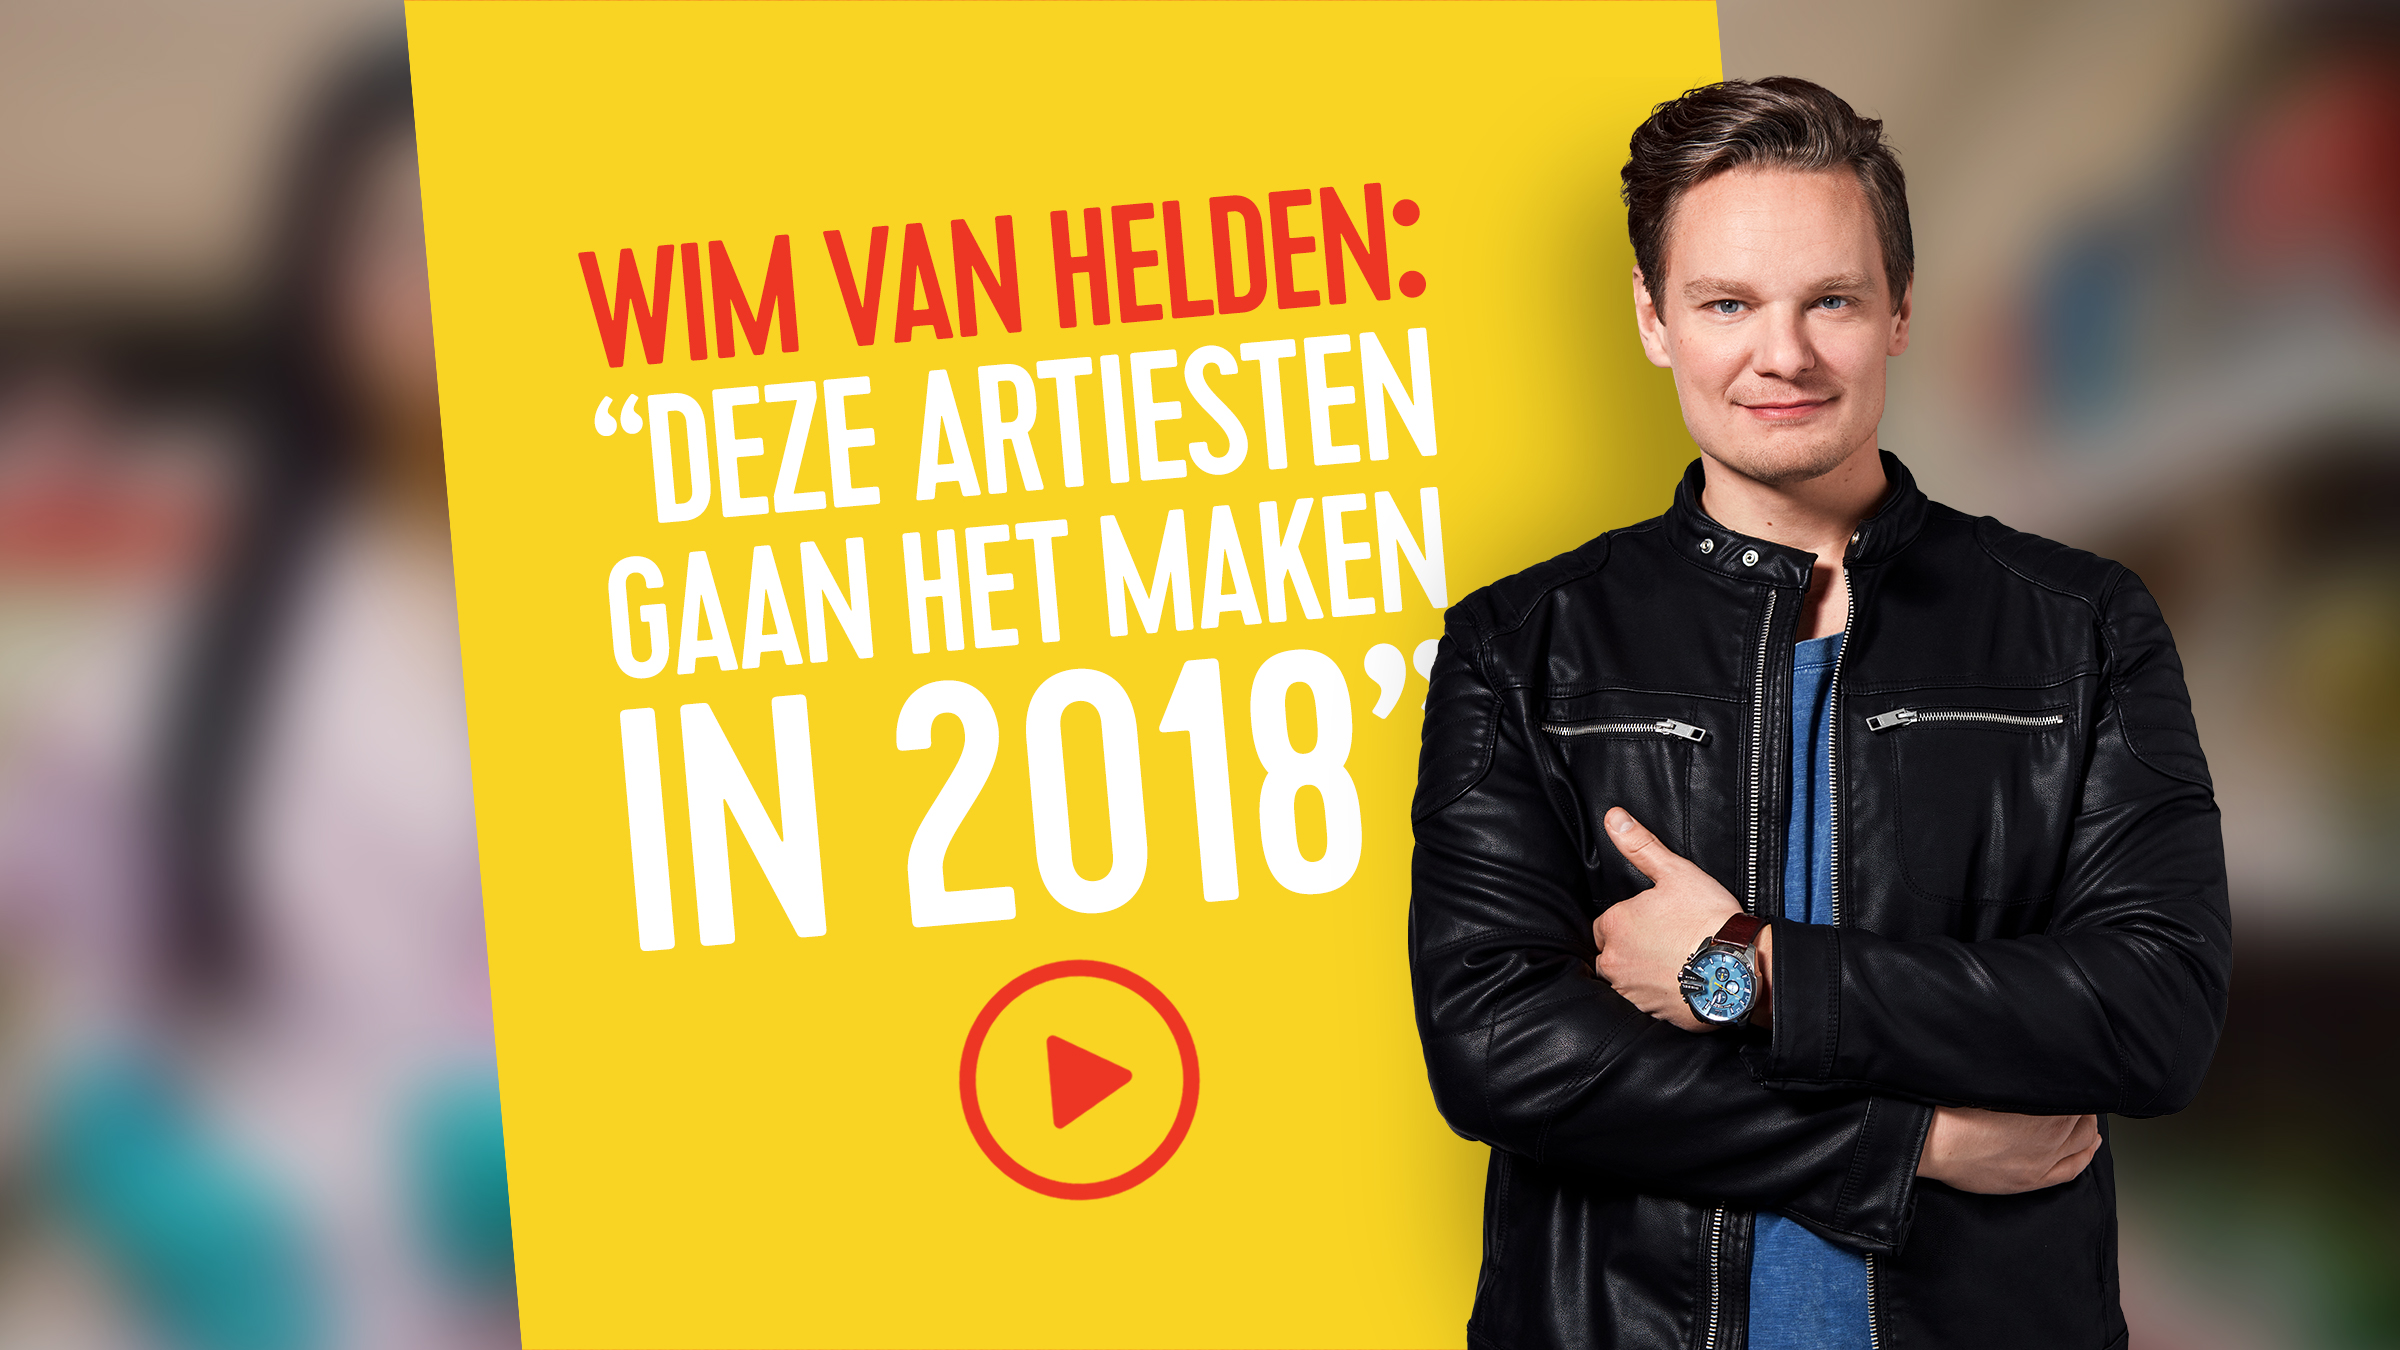 Qmusic teaser basis wimvoorspelt